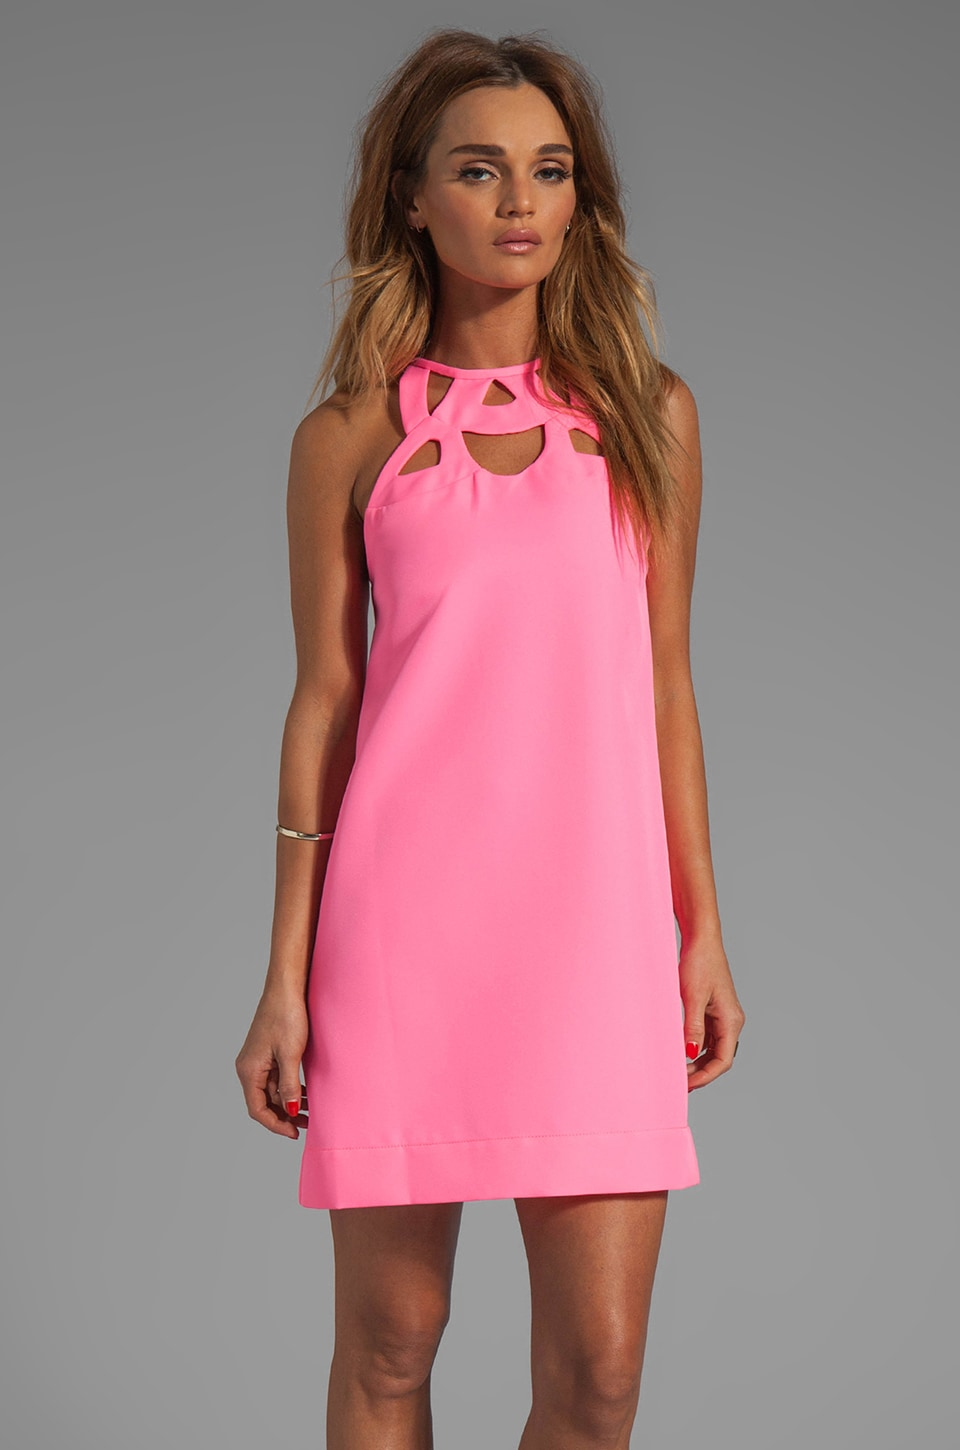 Diane von Furstenberg Machava Tech Twill Dress in Glam Pink